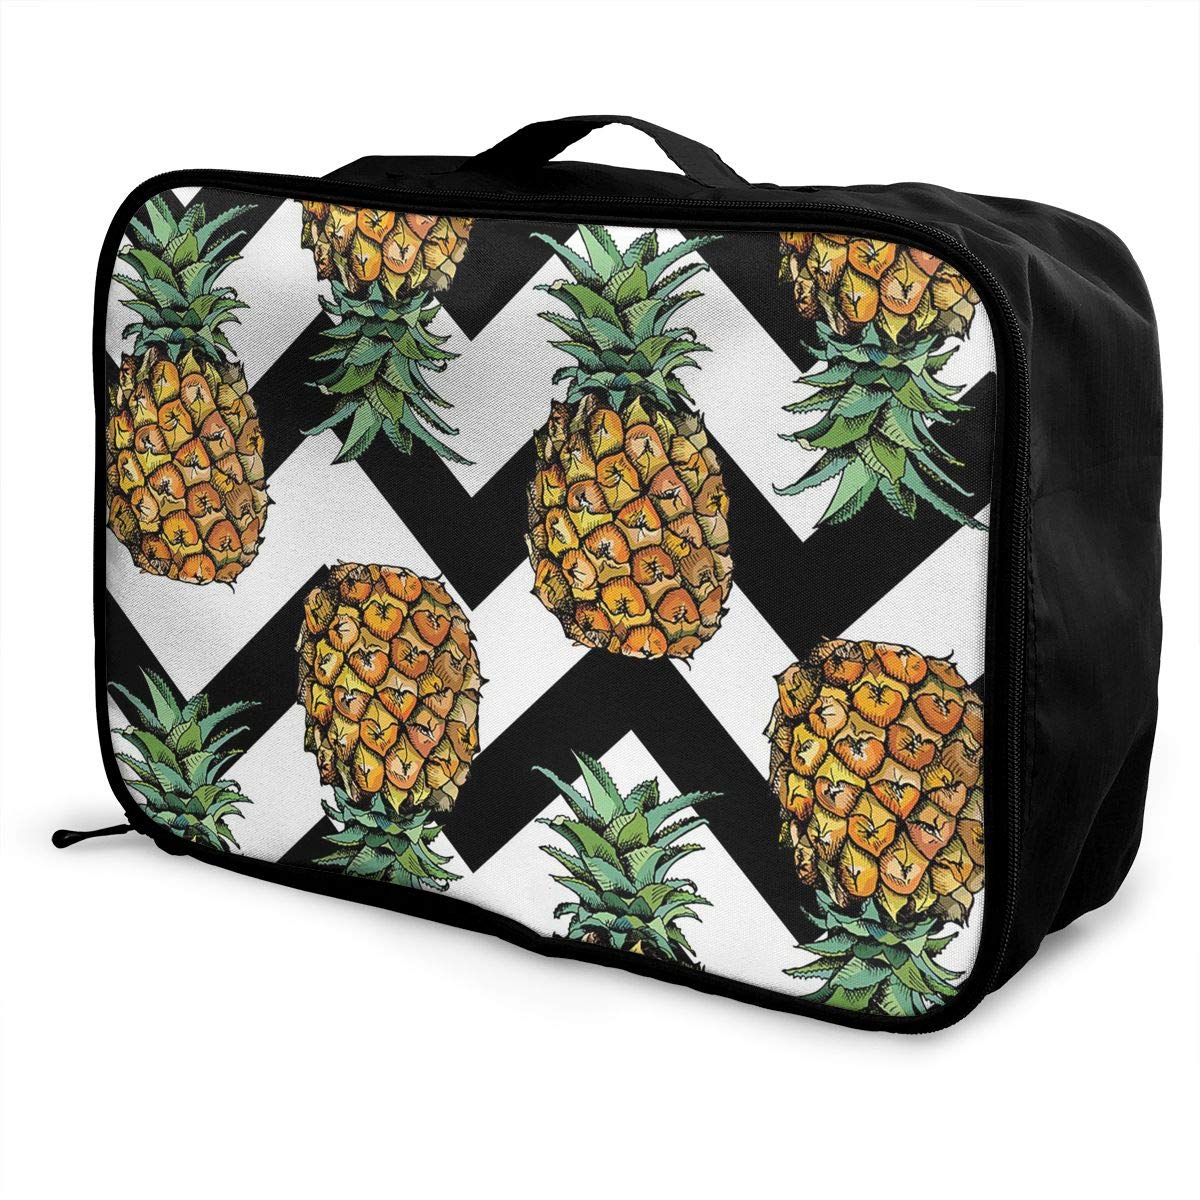 Waves Pineapple Travel Fashion Lightweight Large Capacity Duffel Portable Waterproof Foldable Storage Carry Luggage Tote Bag